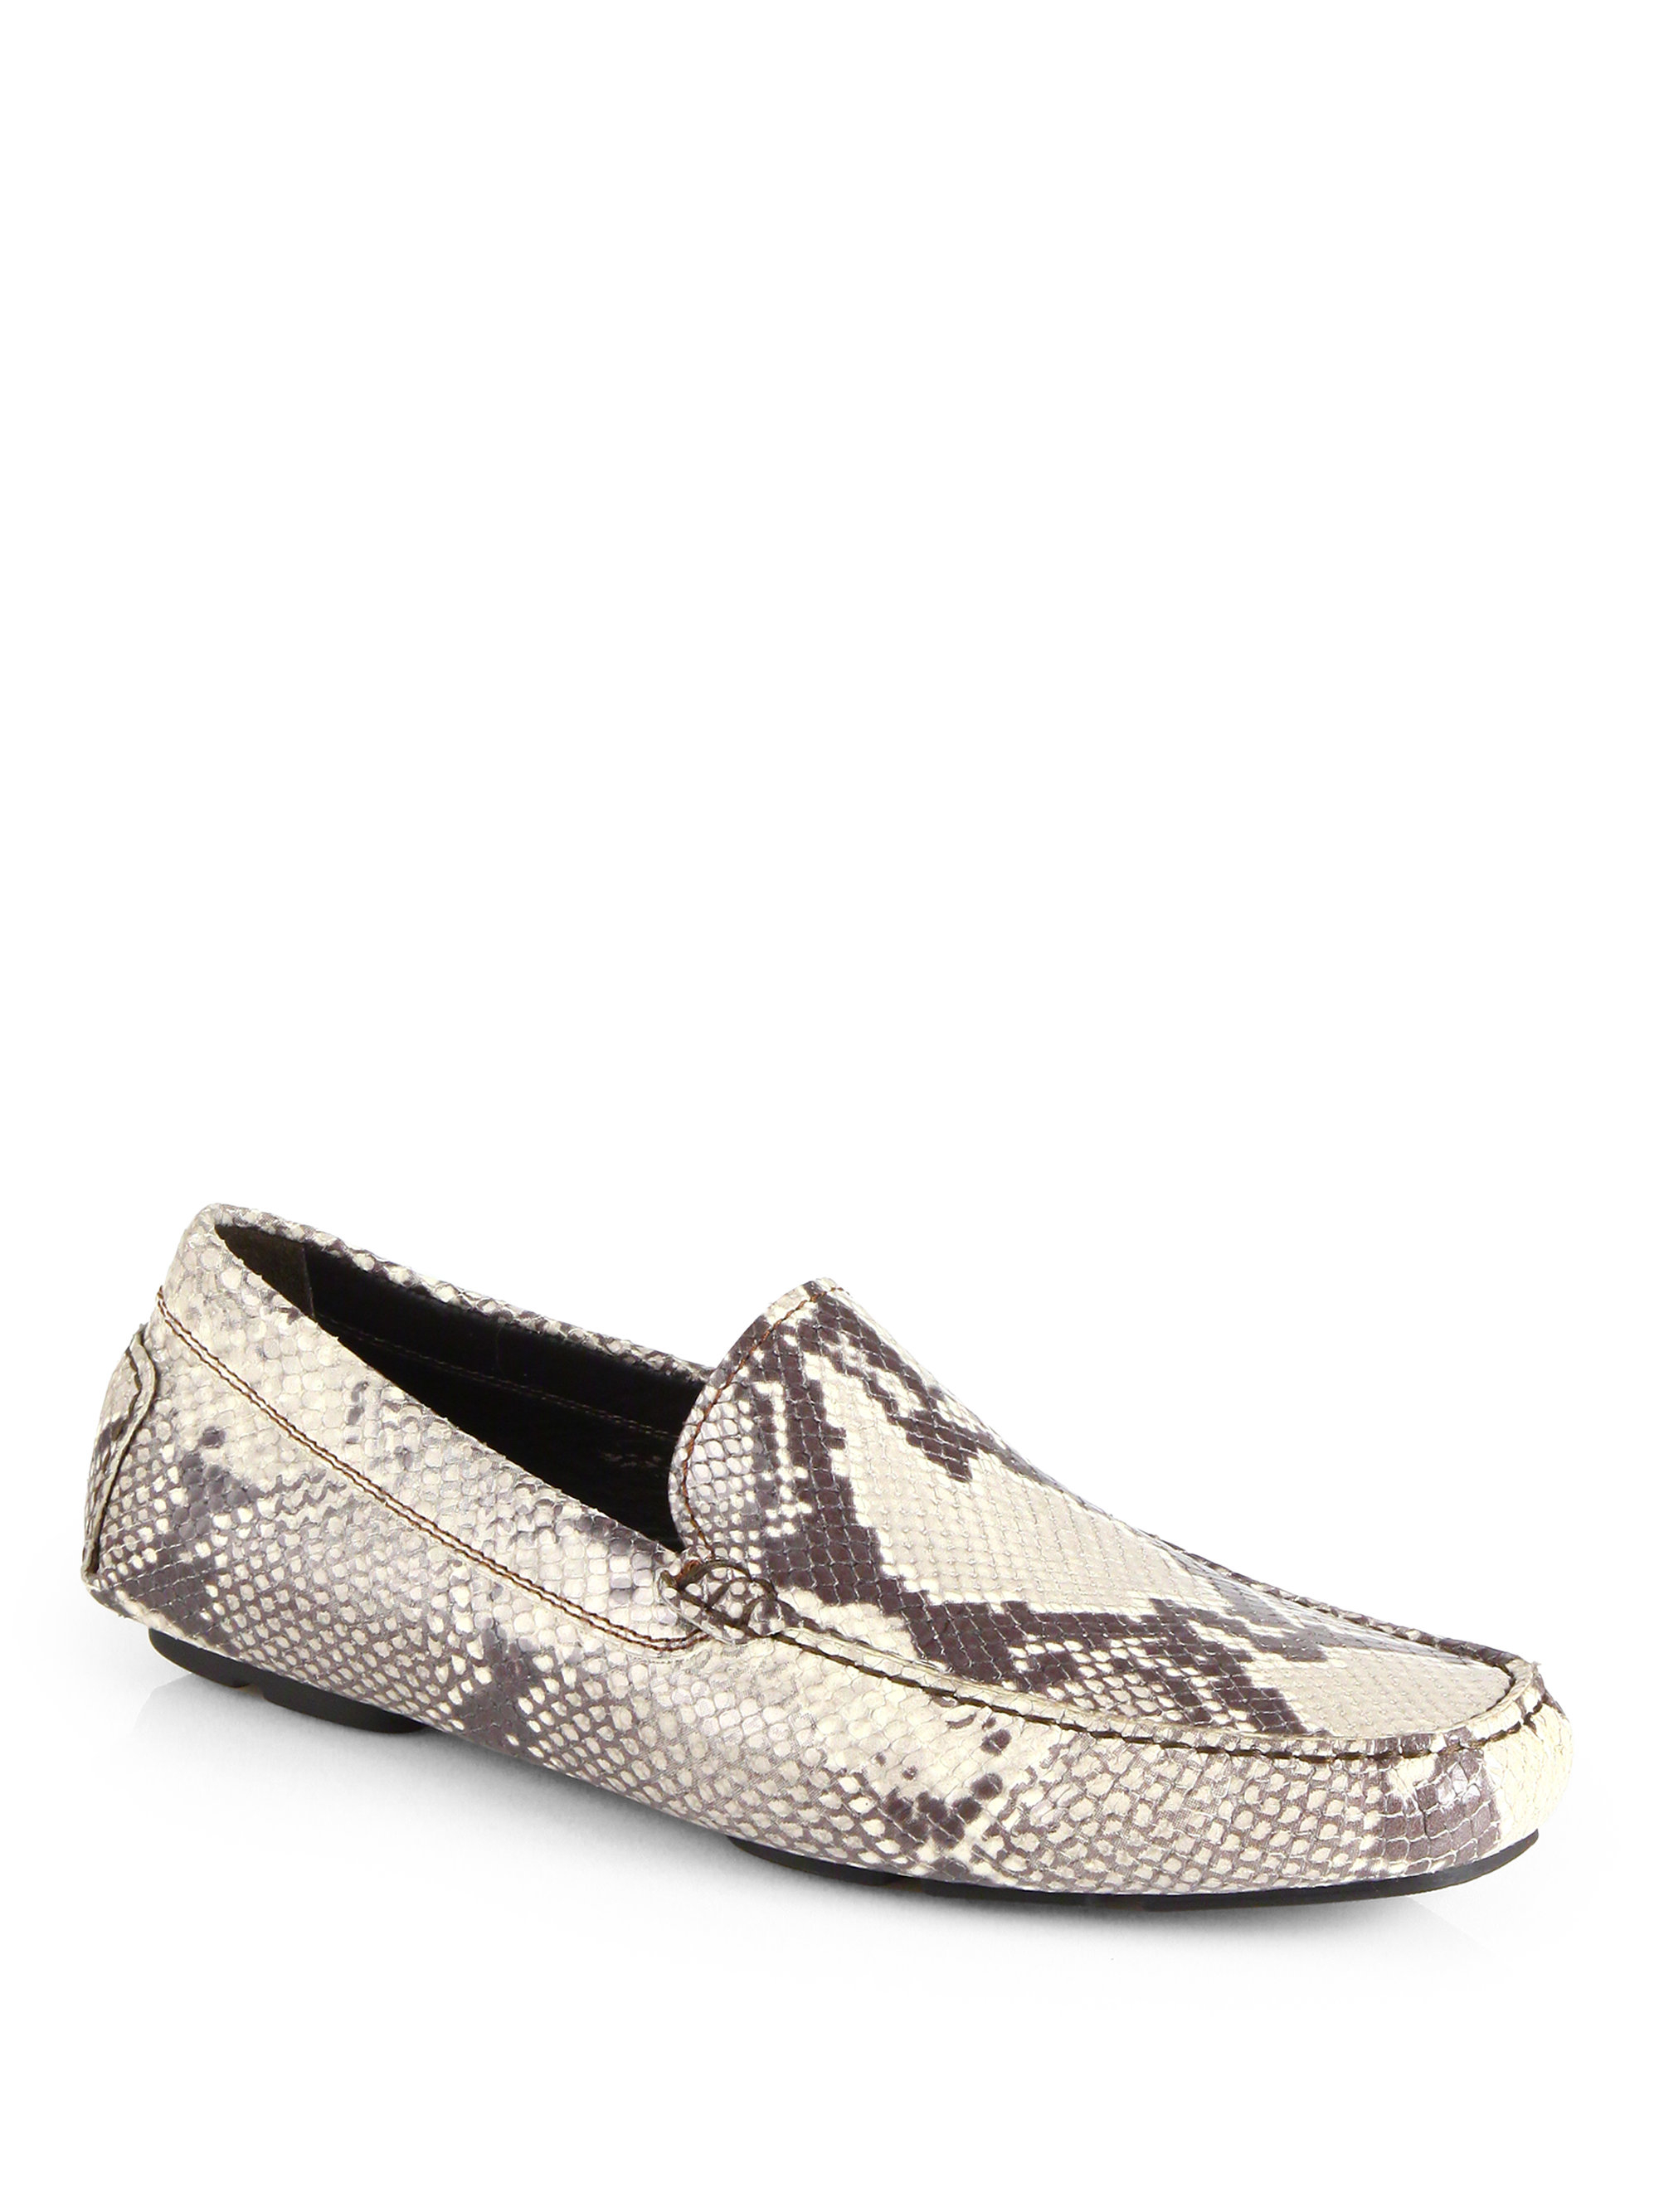 Lyst To Boot Snakeskin Embossed Leather Driving